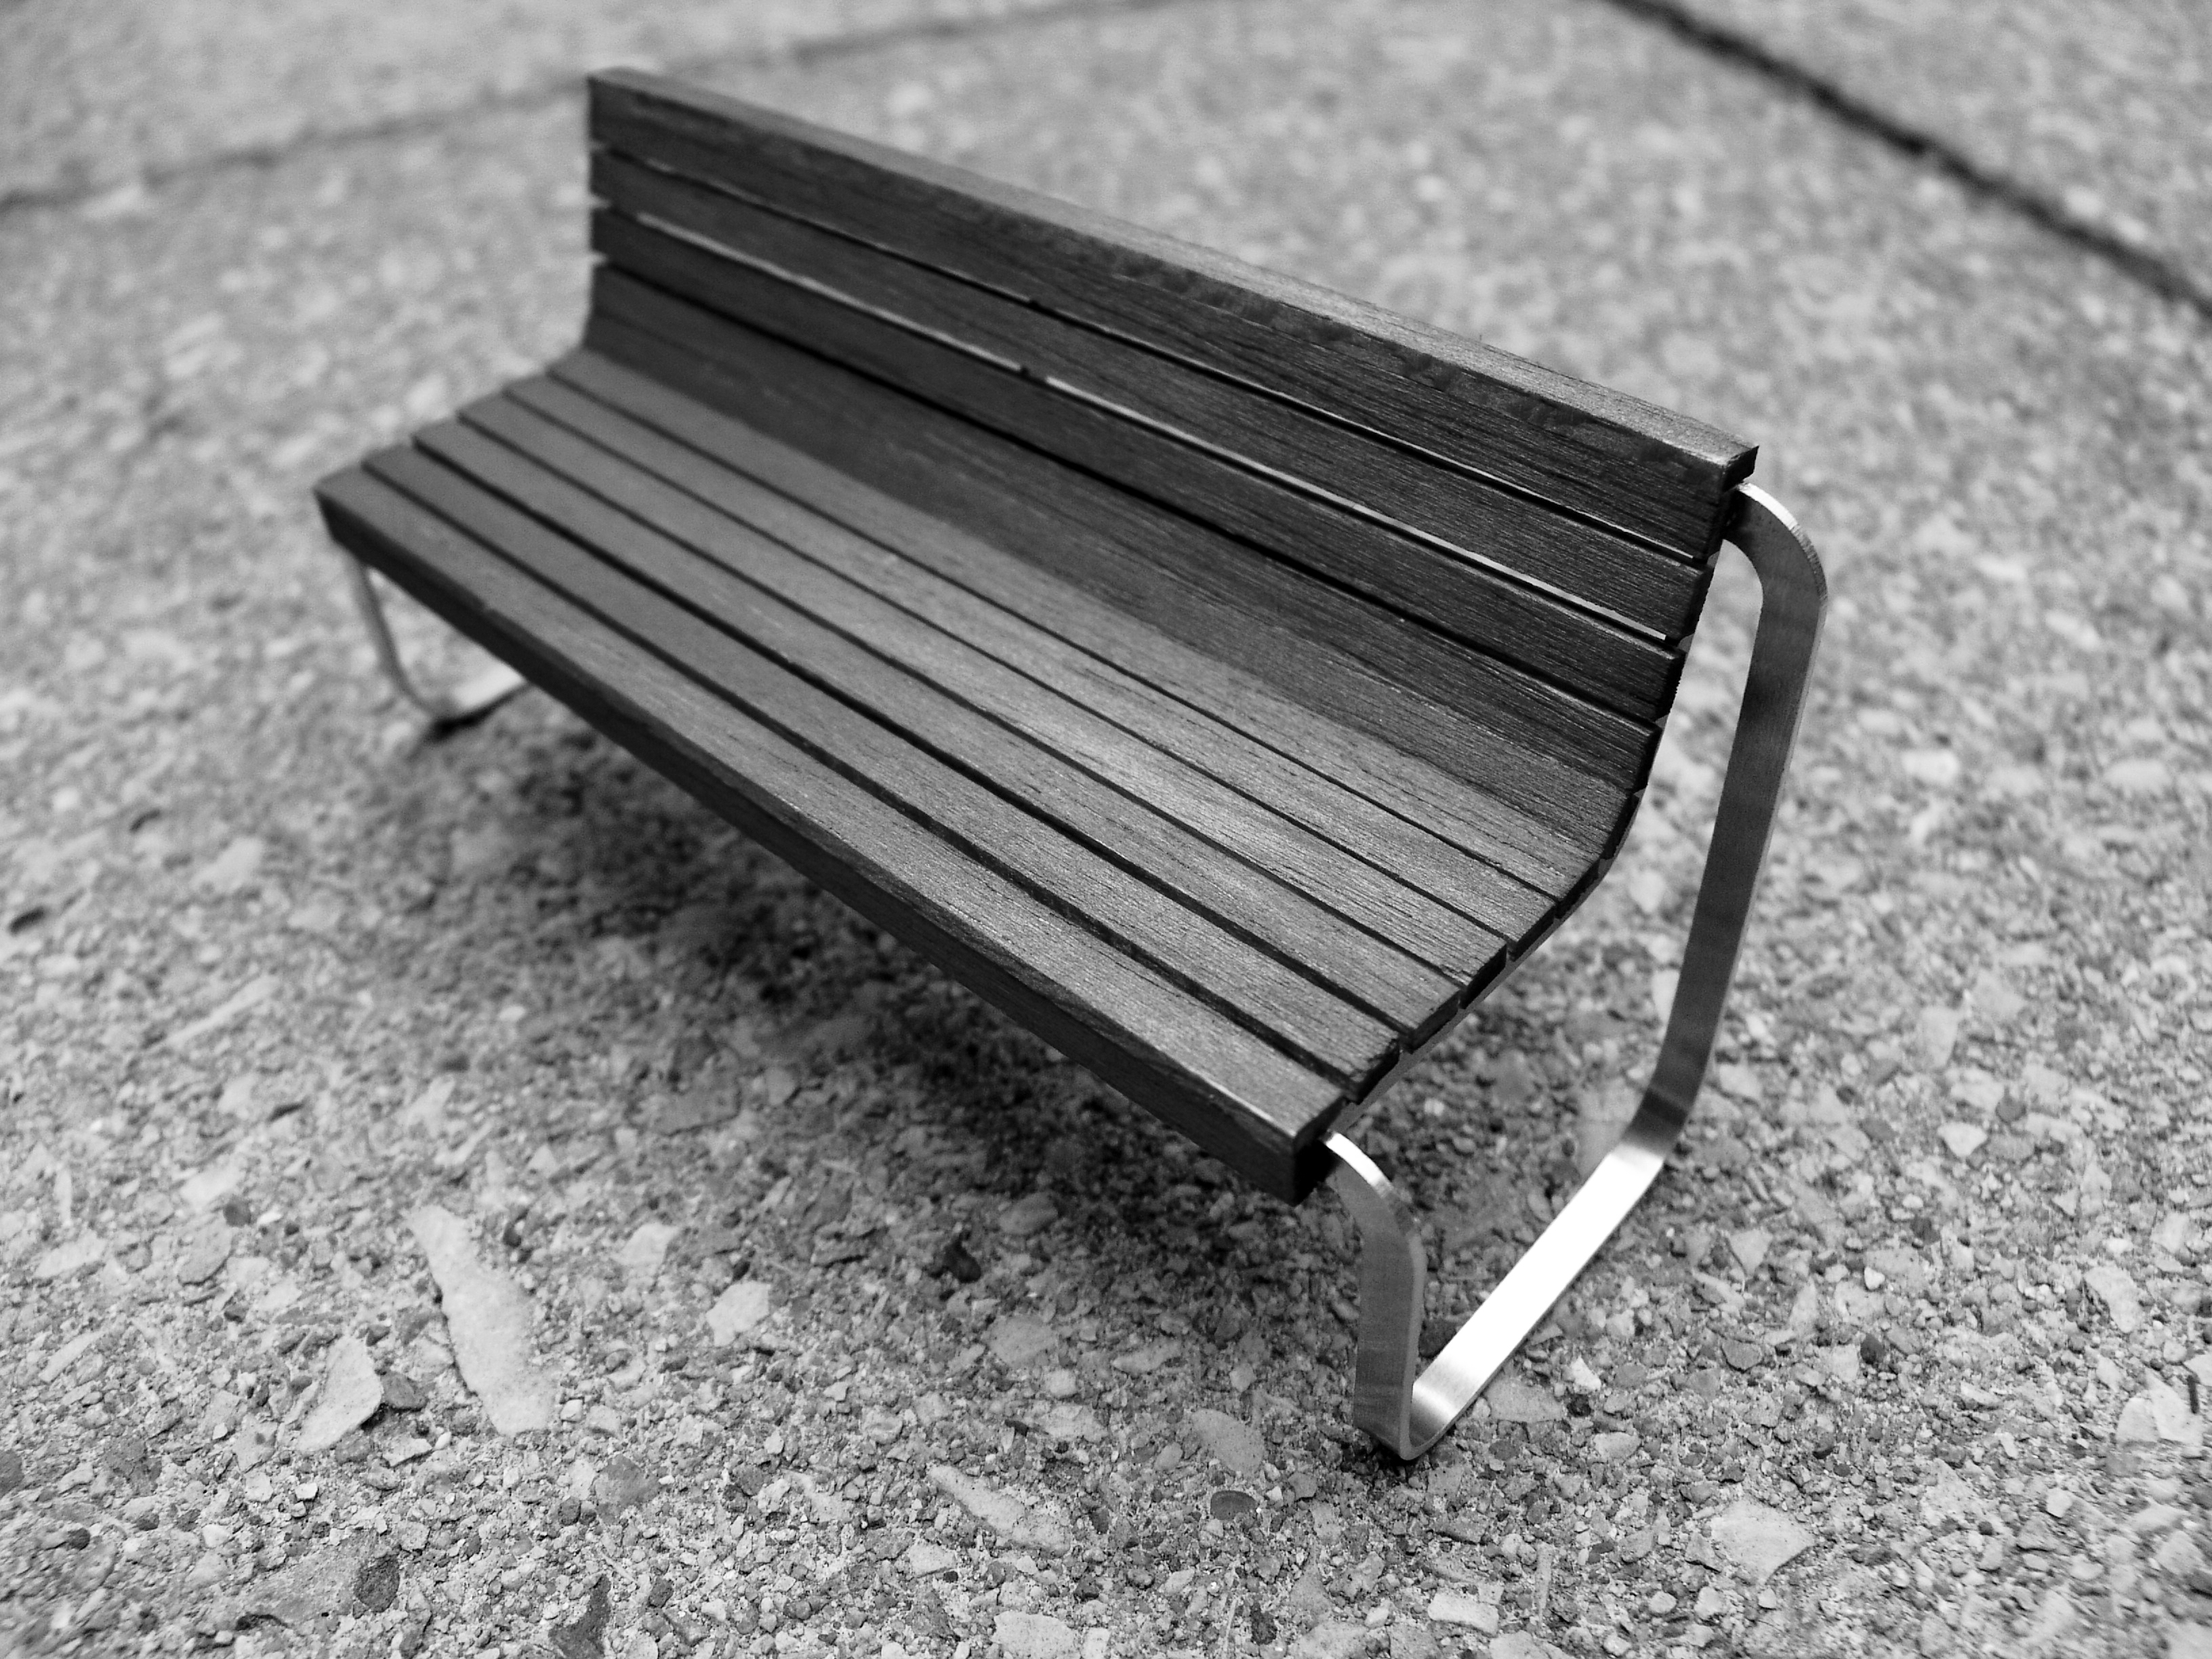 Scale Model 10 Urban Furniture By Andrey Andreev At: scale model furniture